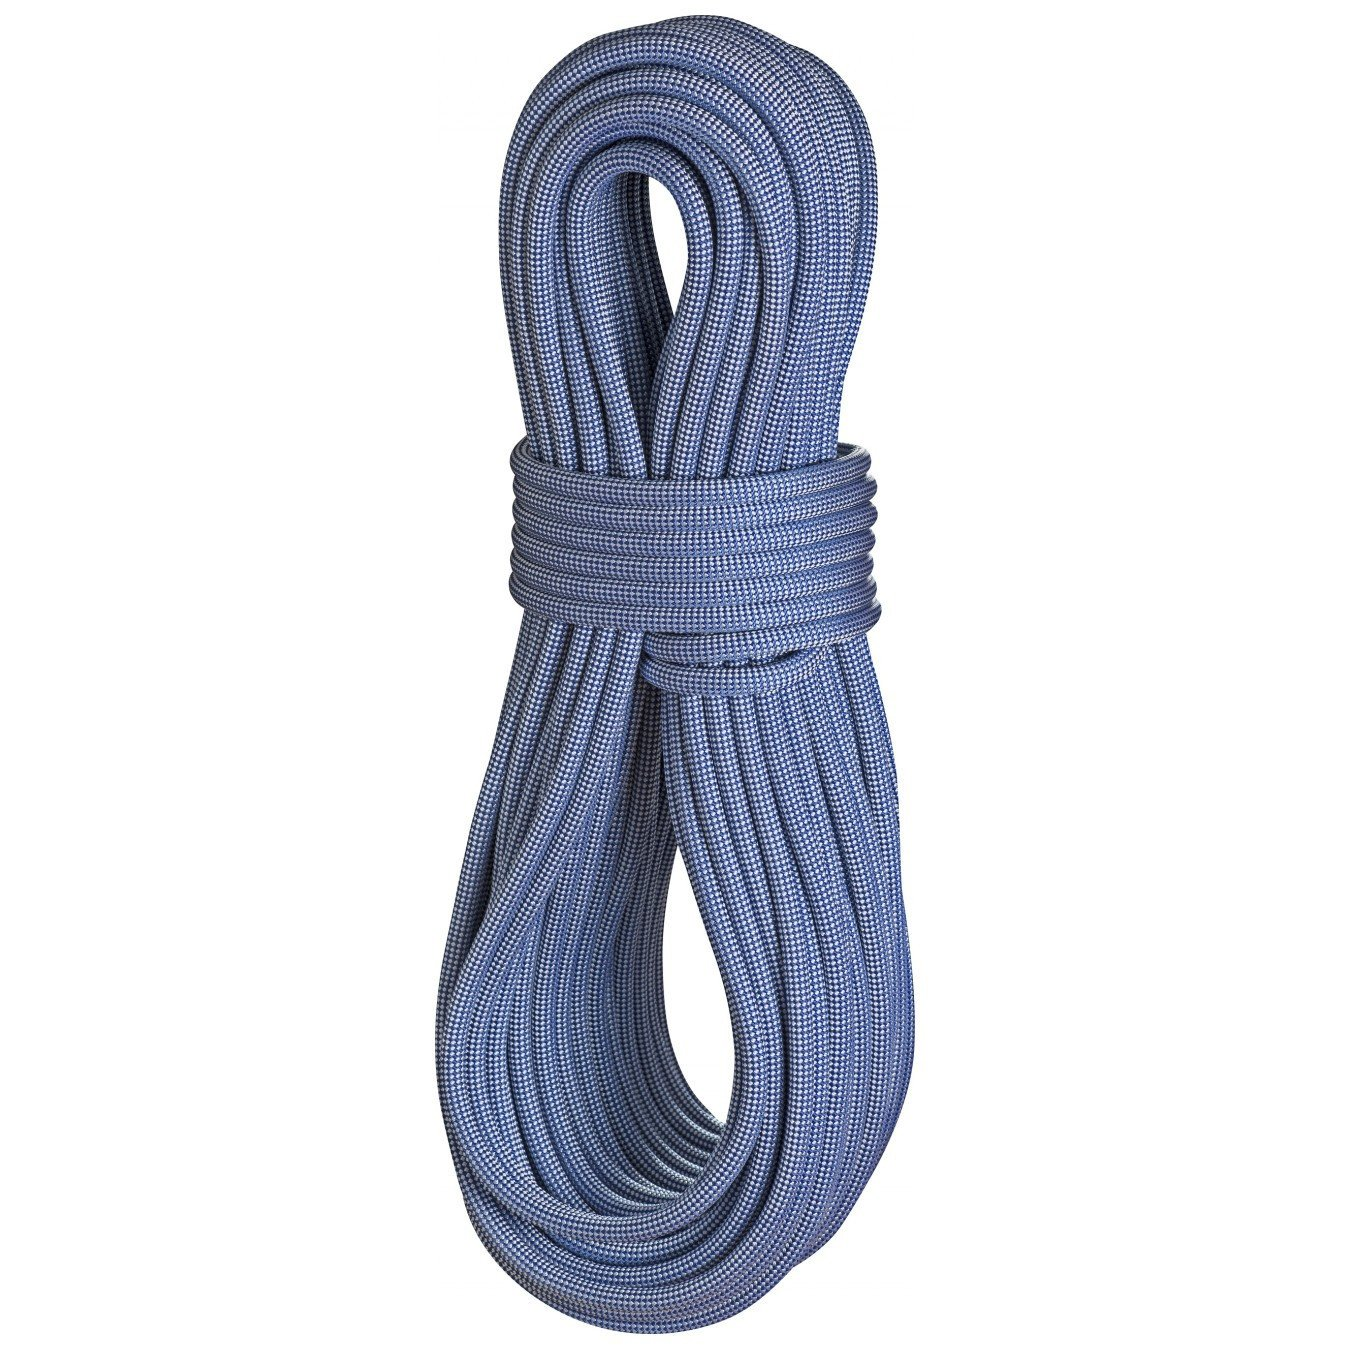 Edelrid Eagle Lite 9.5mm x 70m (Polar) climbing rope, shown in blue colour